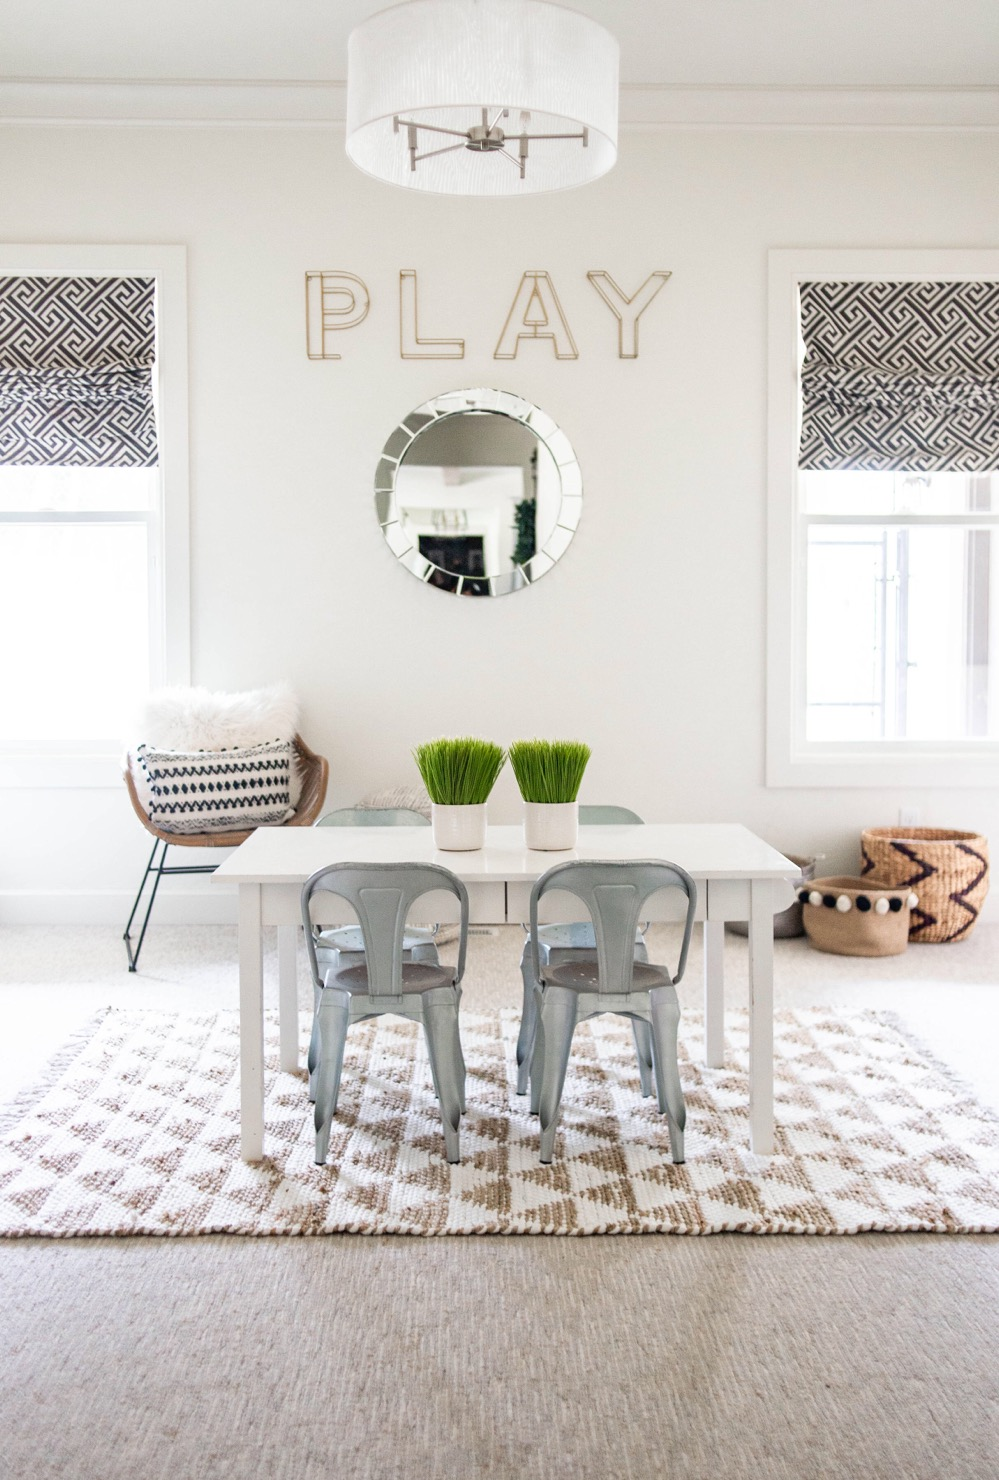 Awesome Playroom Decorating Ideas For Kids Curls And Cashmere